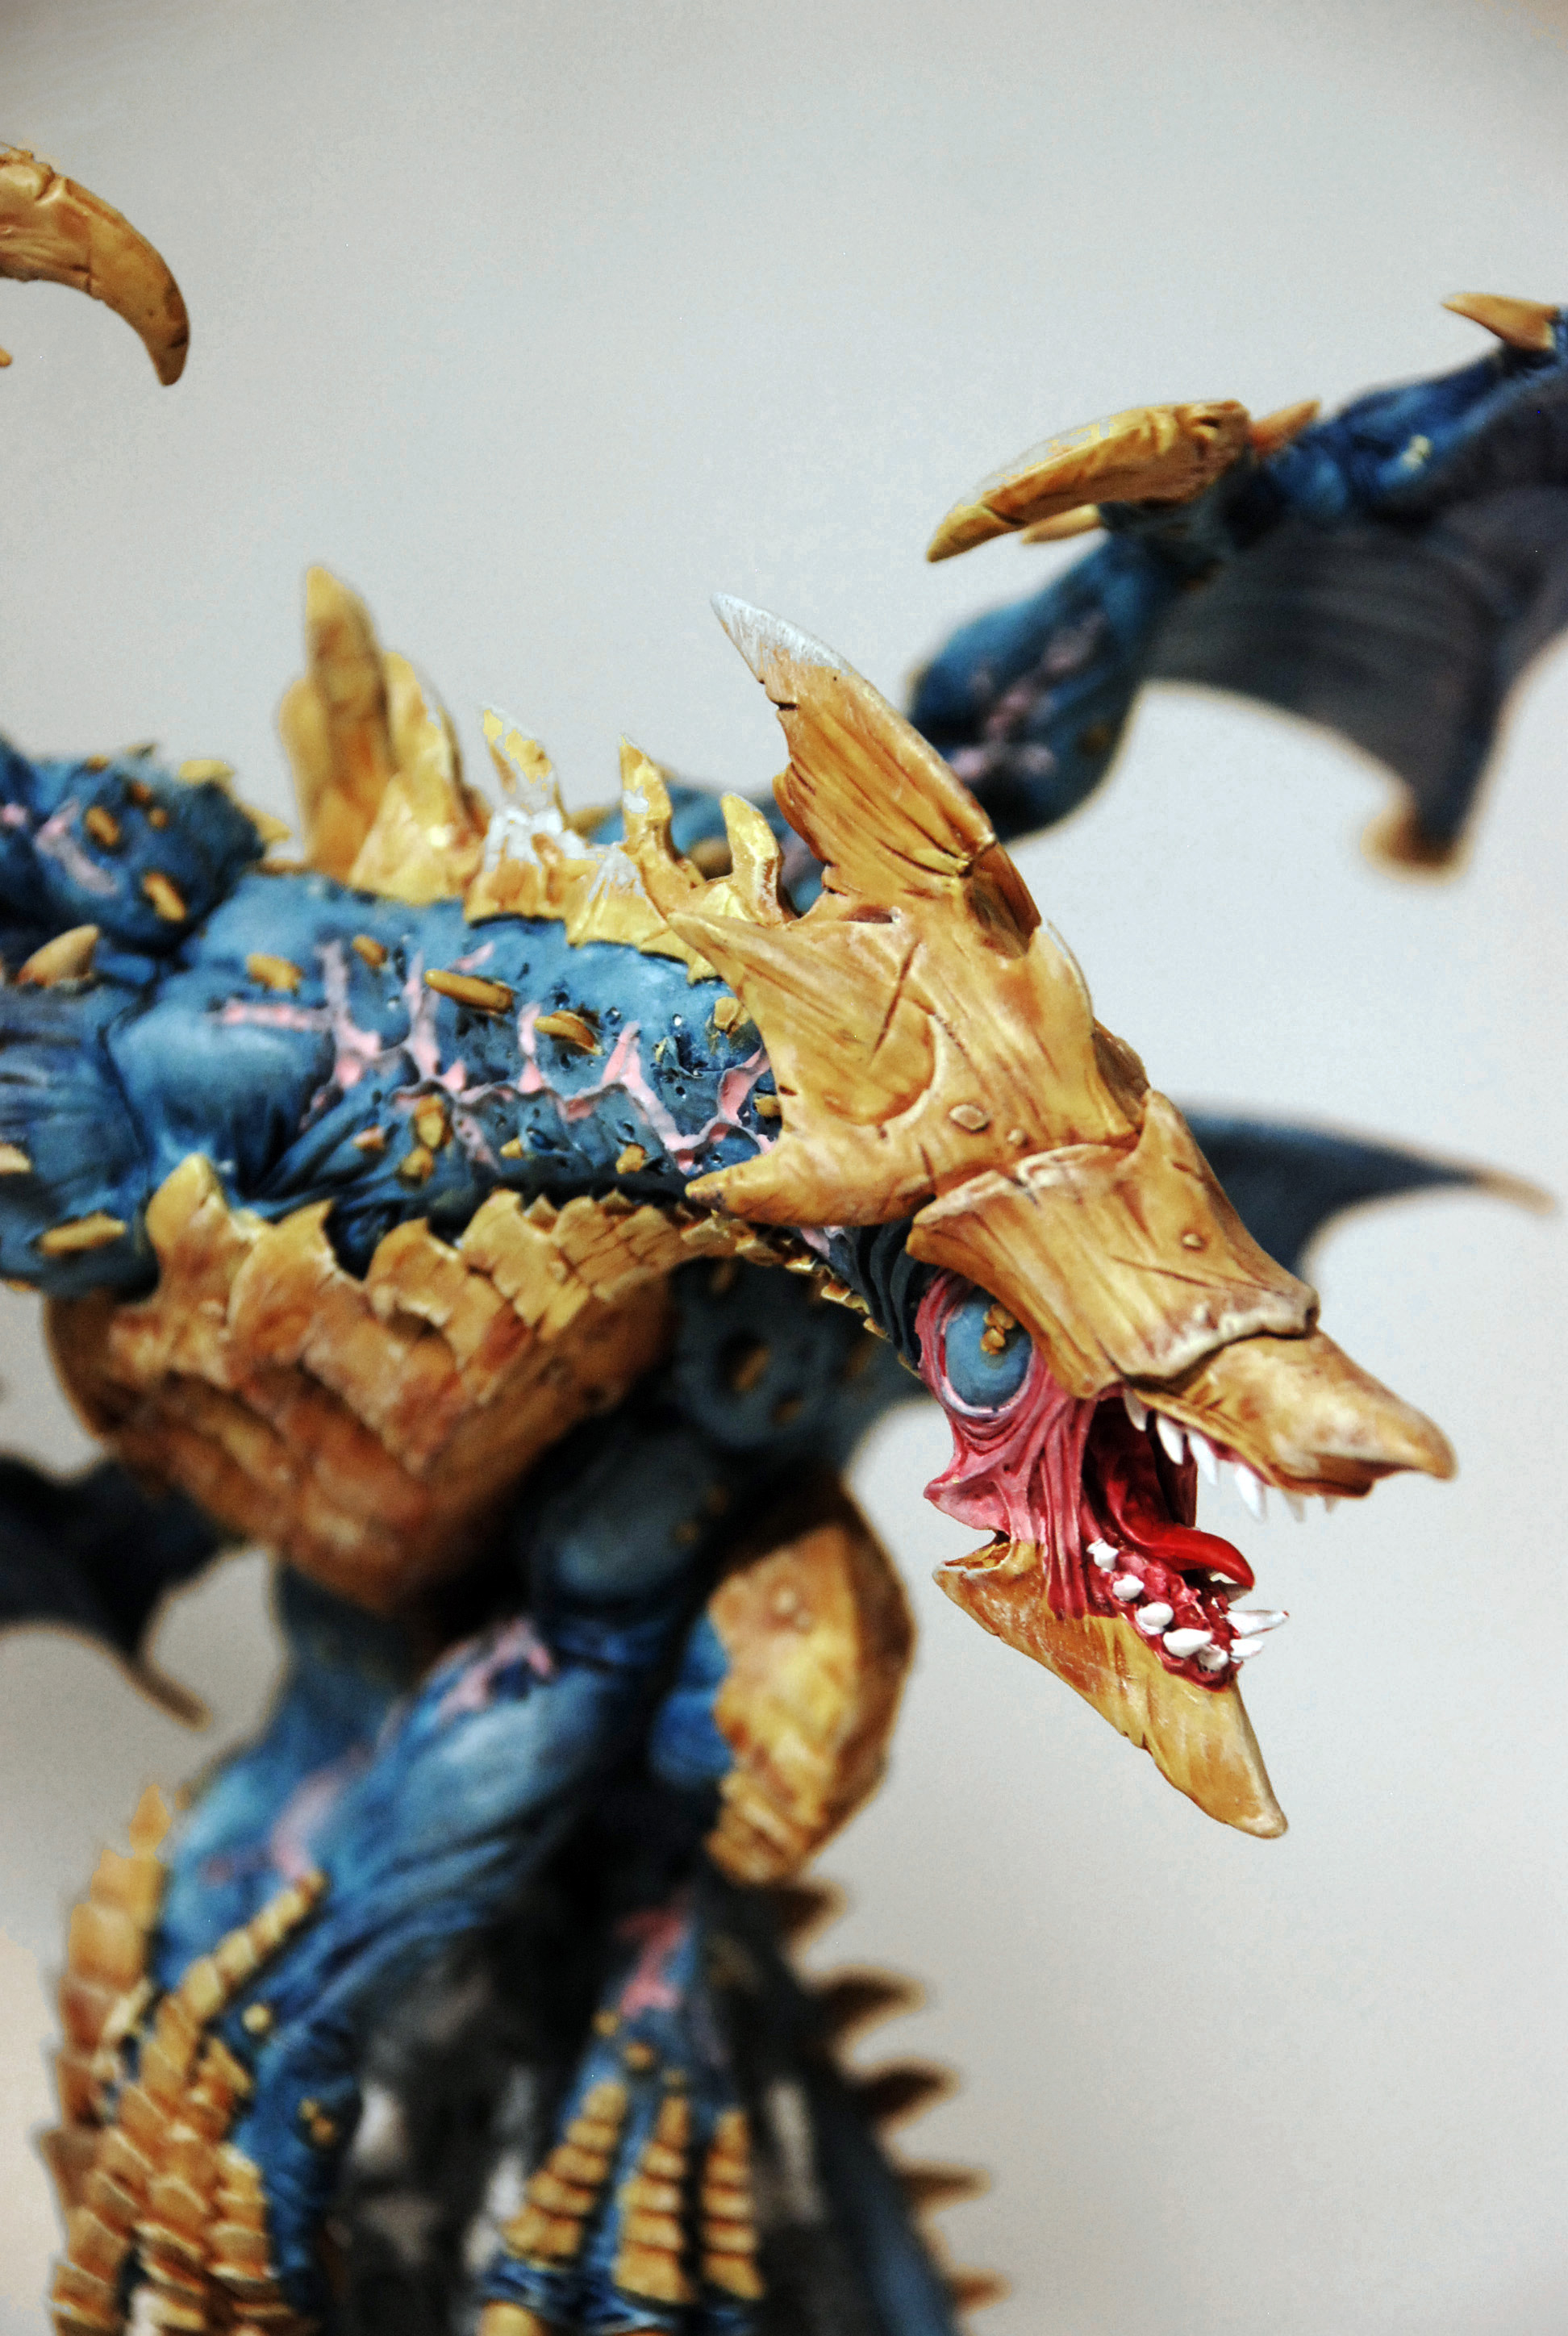 Photo of a miniature gaming model dragon